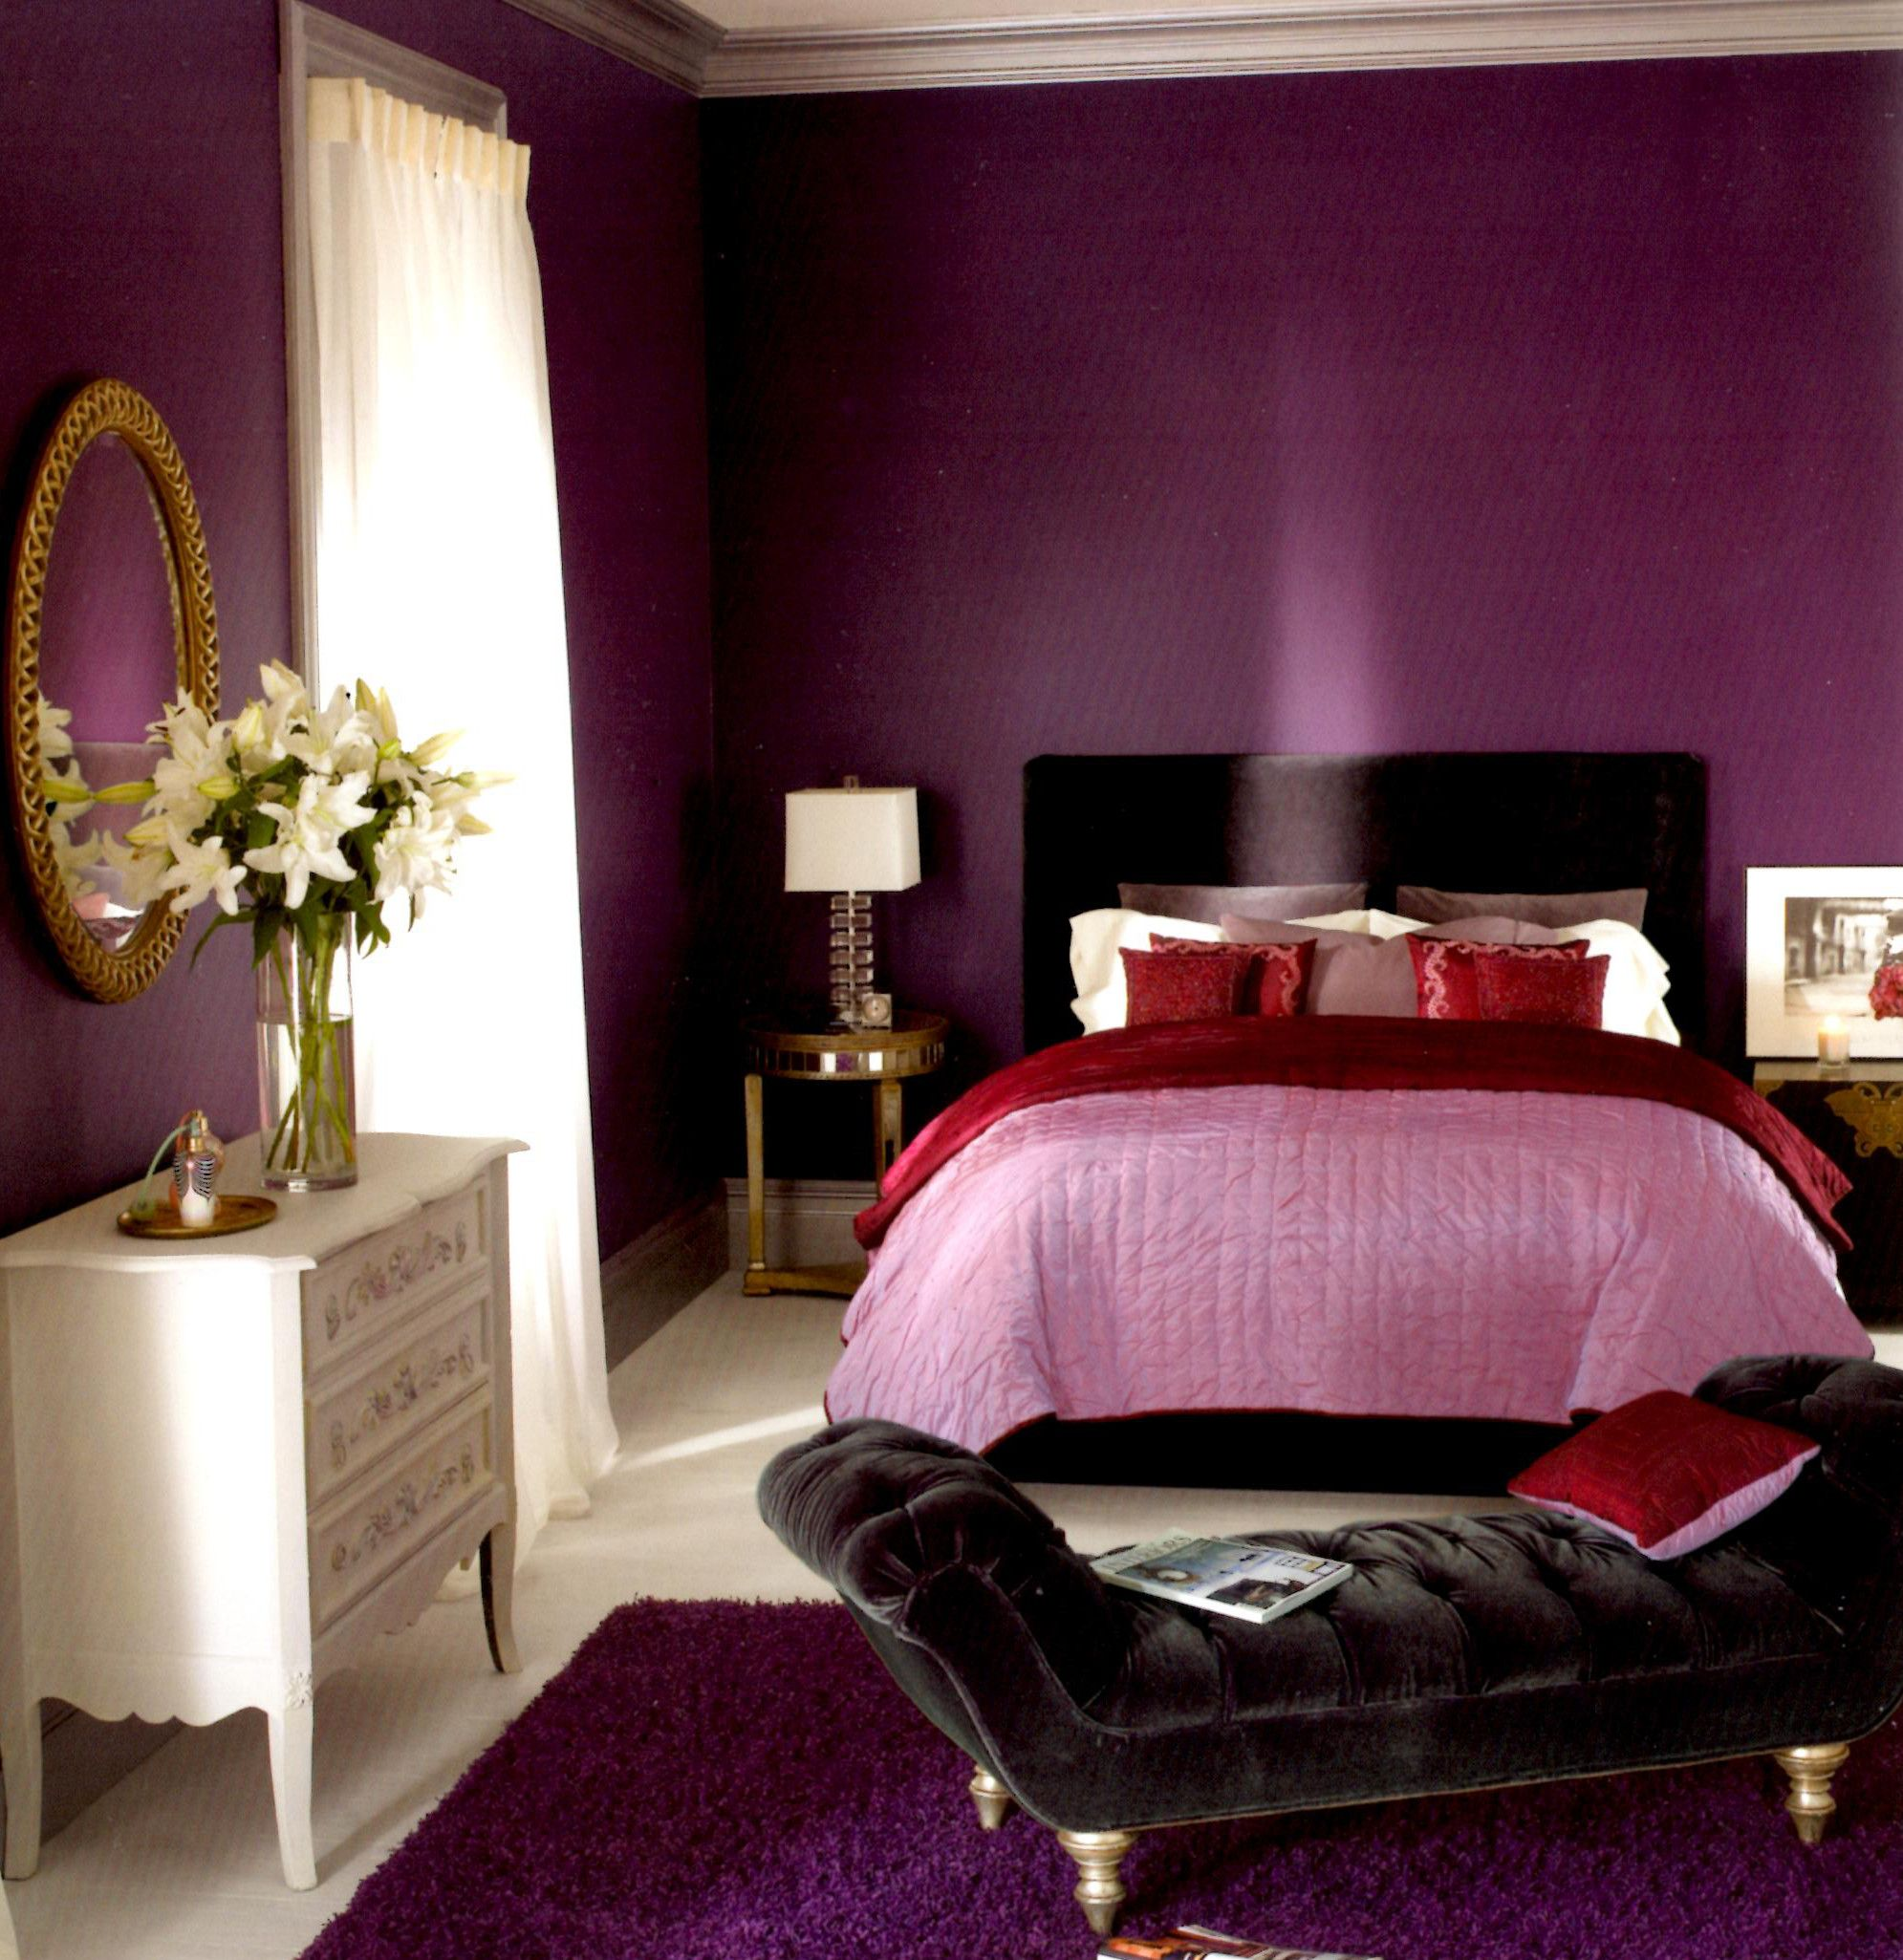 Paint colors for bedrooms pink - Remarkable Purple Wall Paneling Colors As Smart Bedroom Paint Ideas In Teenage Bedroom Decor Also White